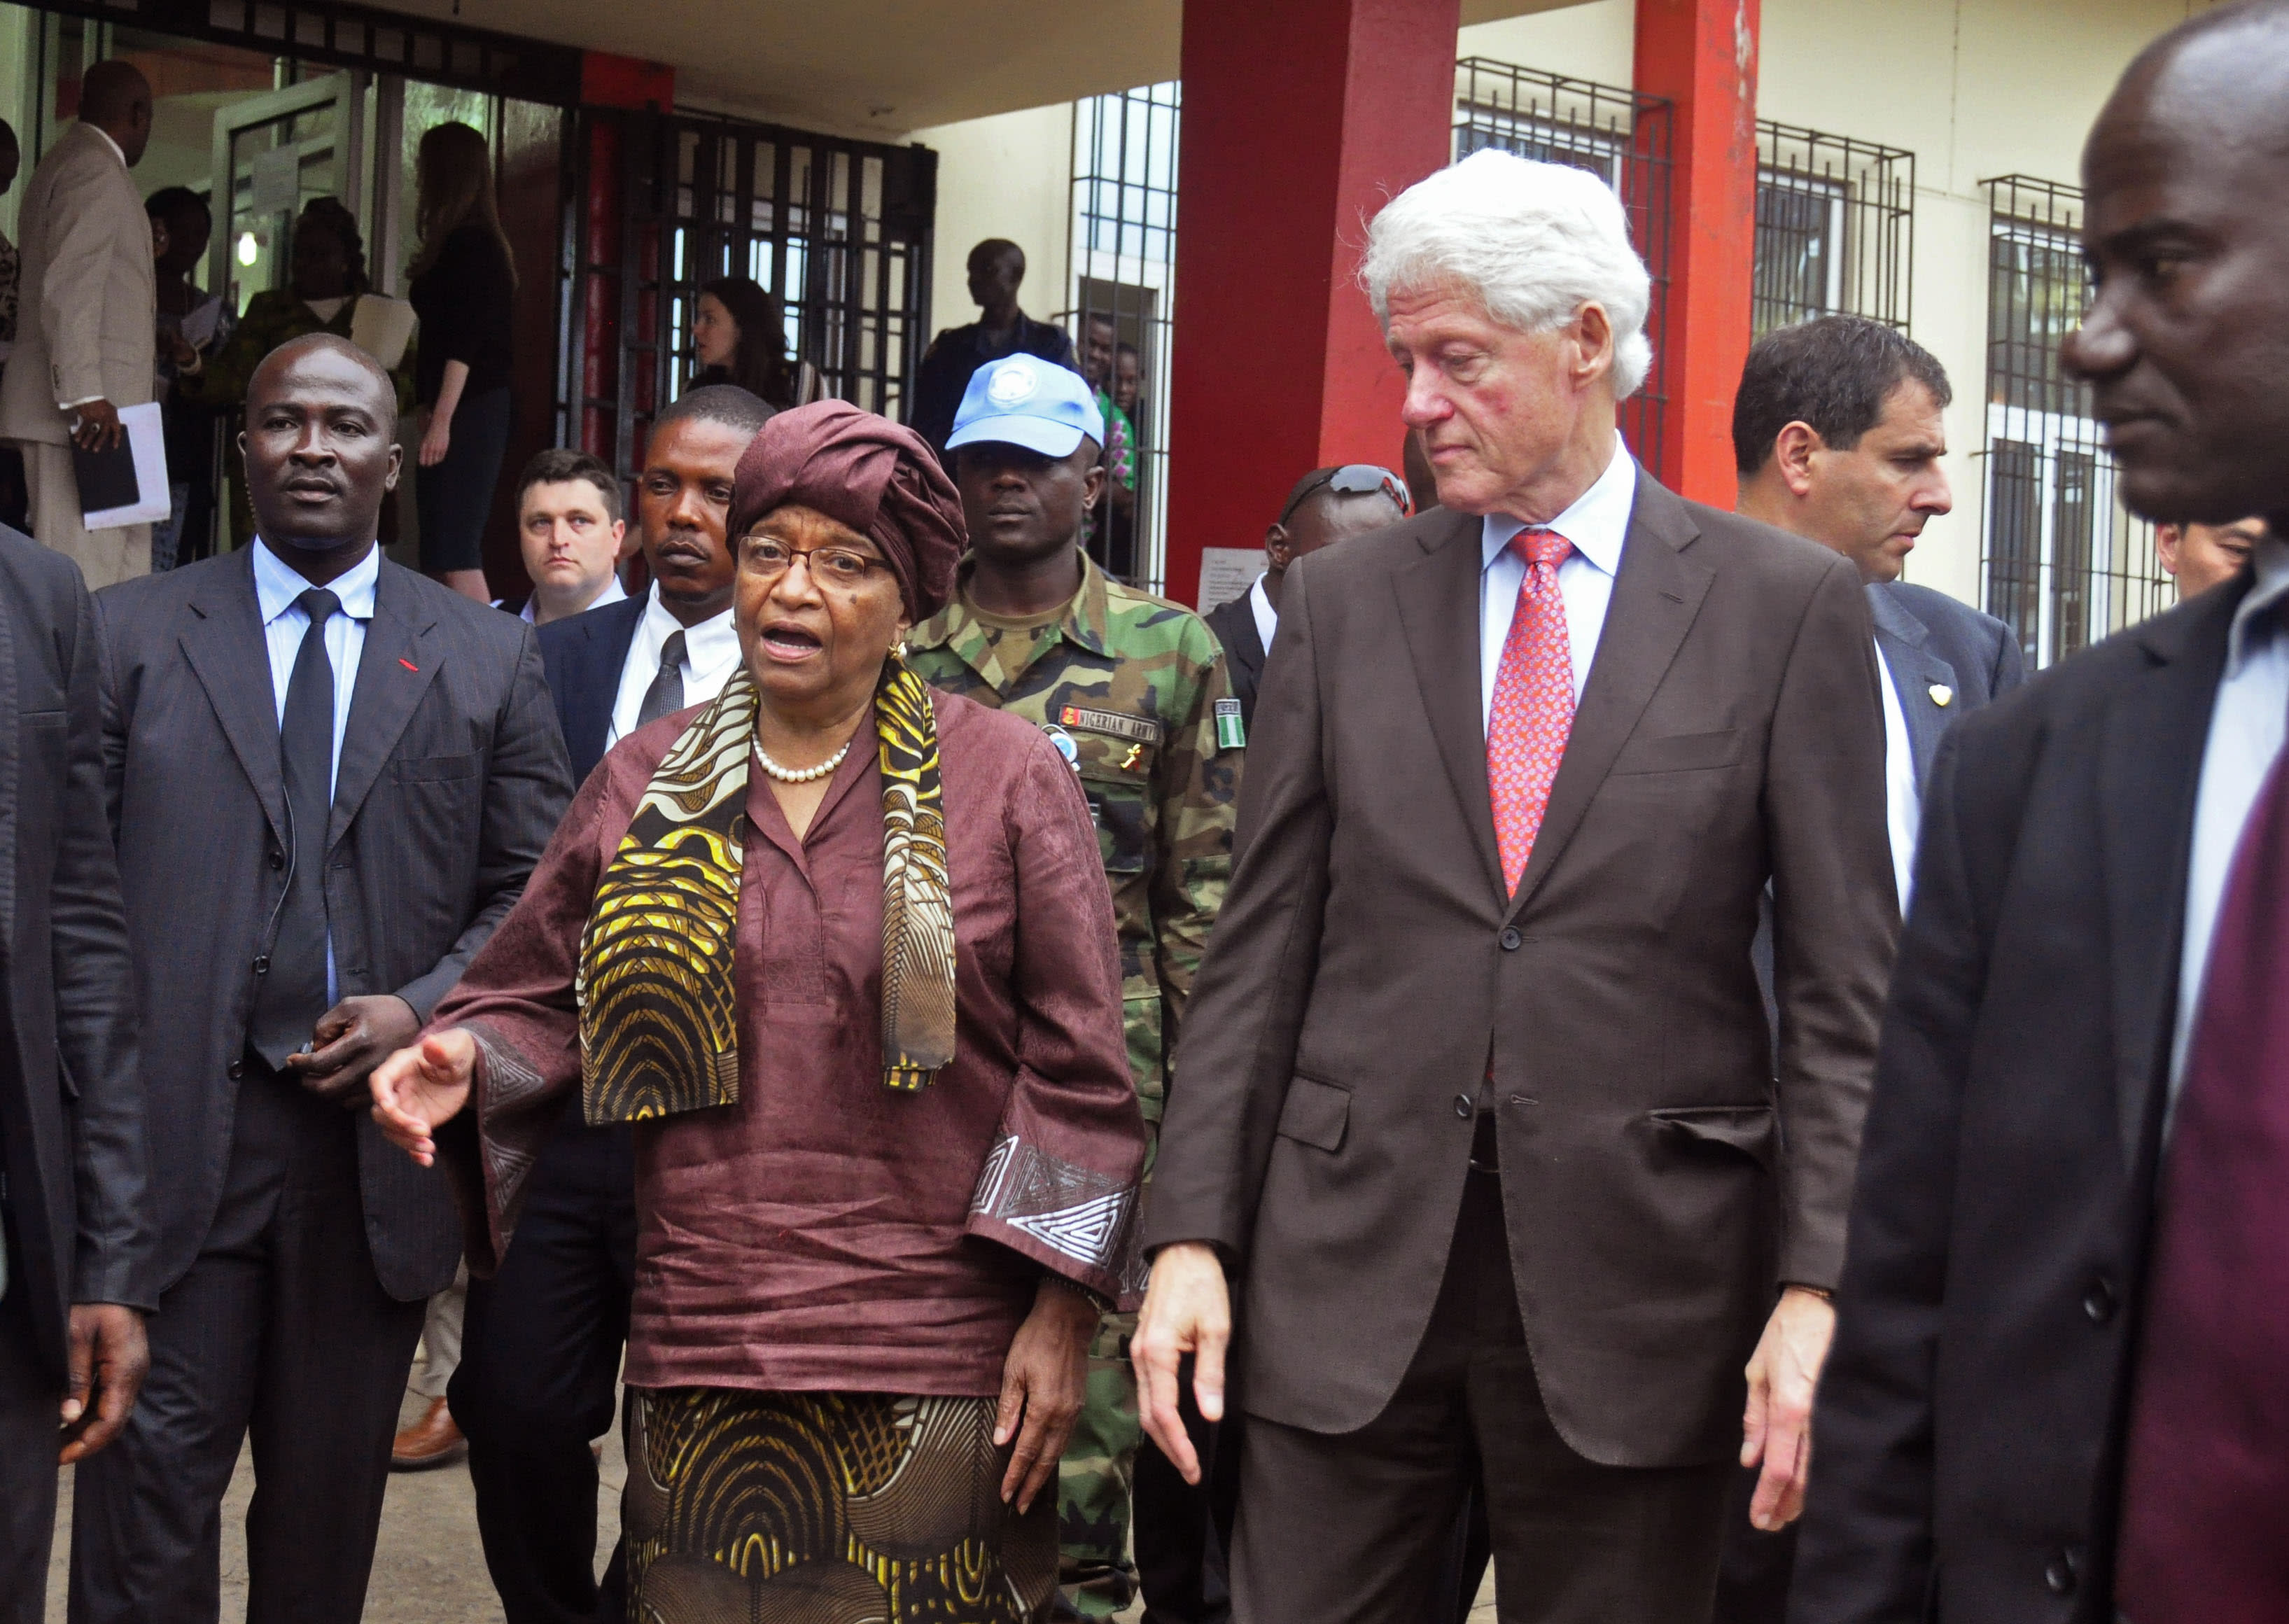 Former US leader Clinton praises Liberia progress on Ebola